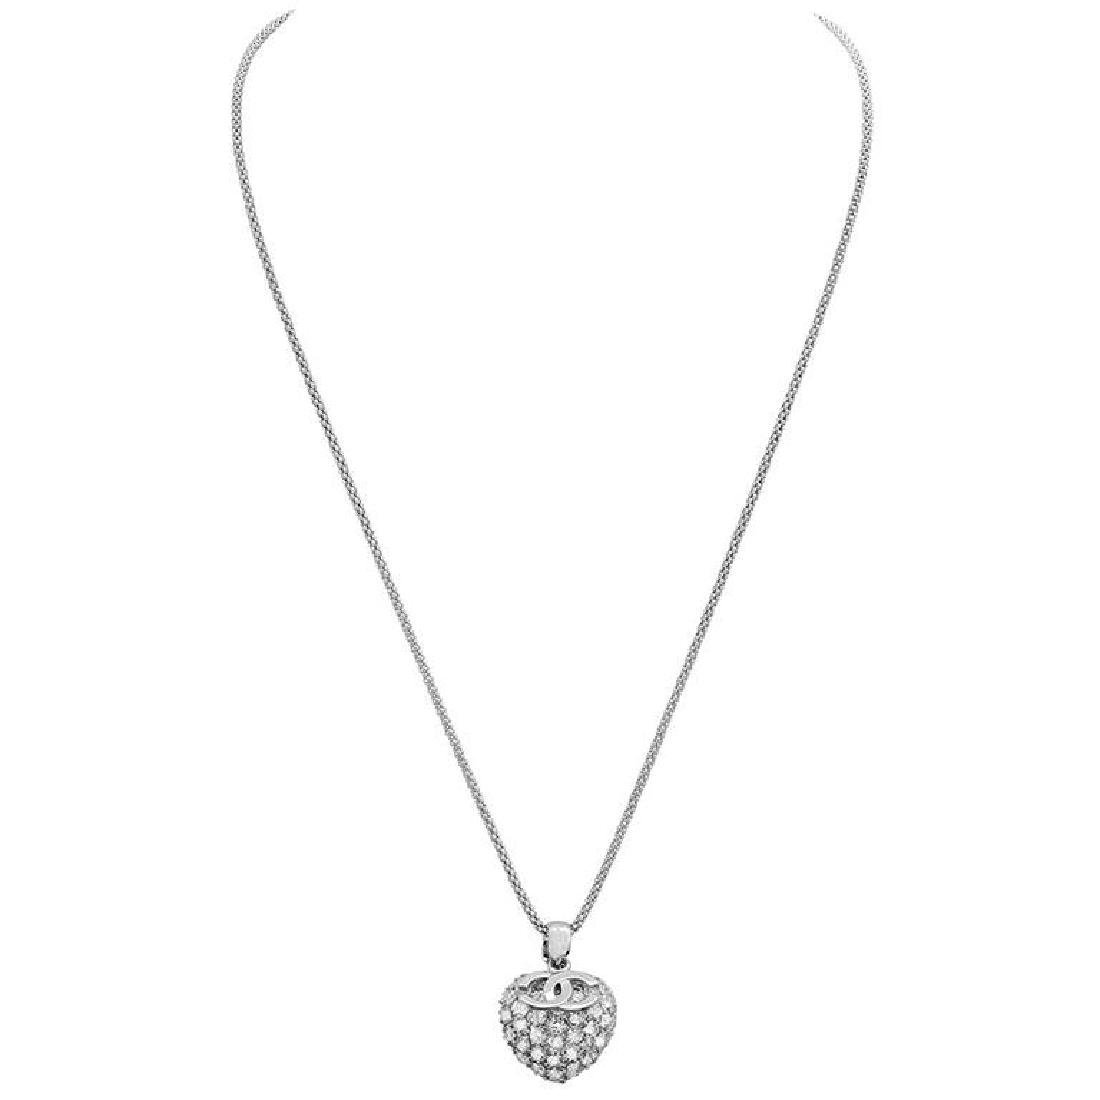 14k White Gold 2.98ct Diamond Pendant With Chain